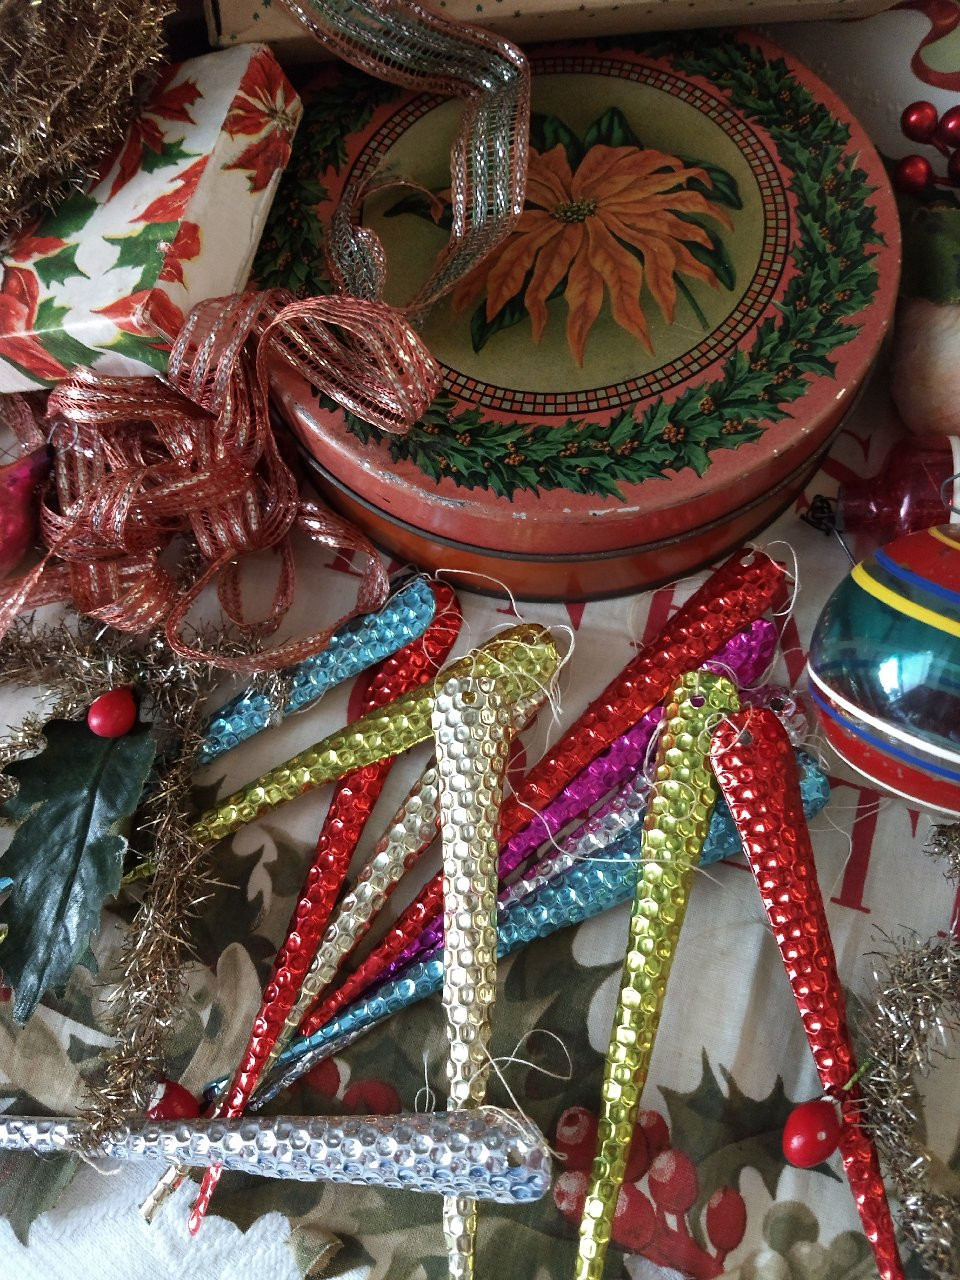 Old Ornaments, Boxes And Bows, Tinsel Garland From A Christmas Past